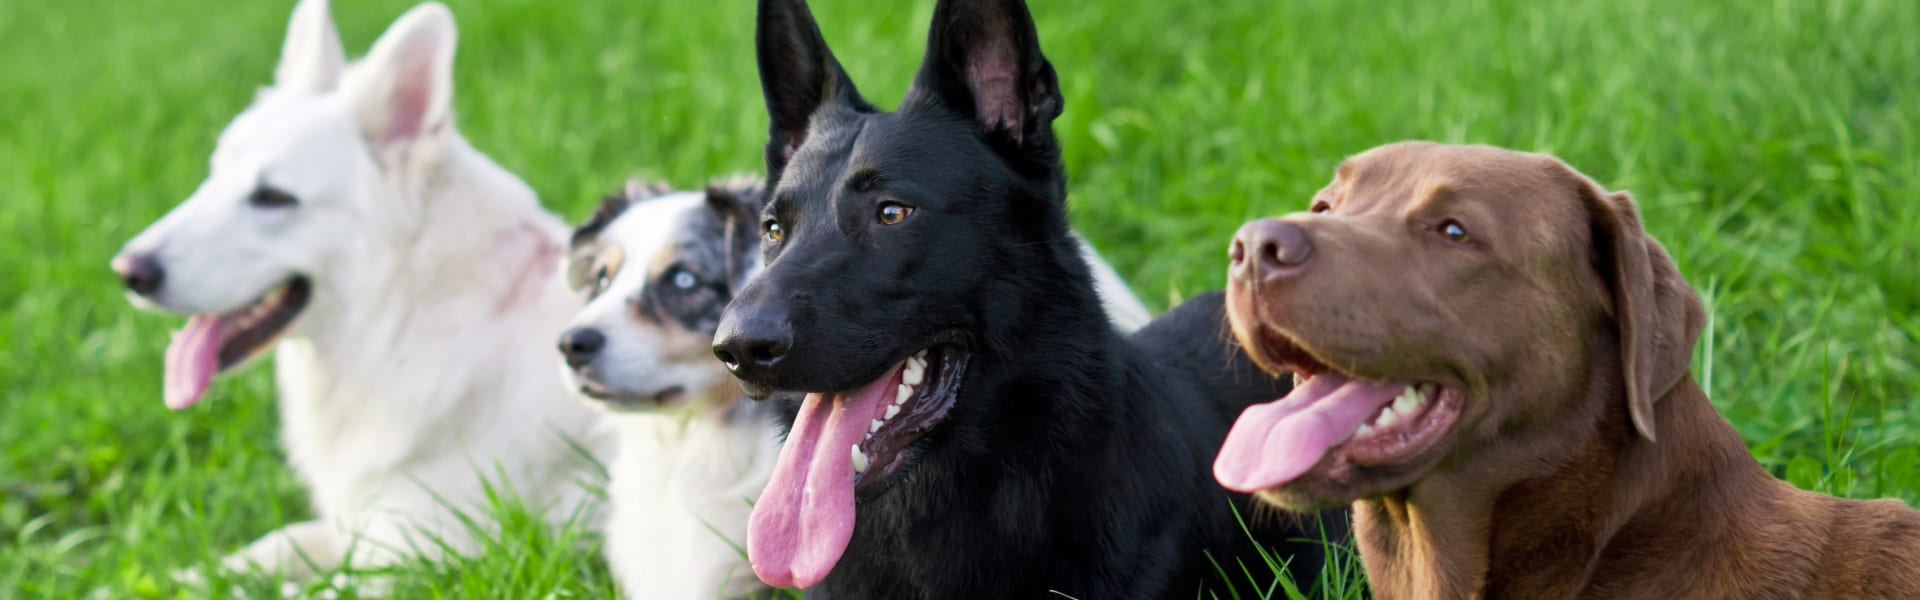 Dogs lying in grass - Positive reinforcement dog training